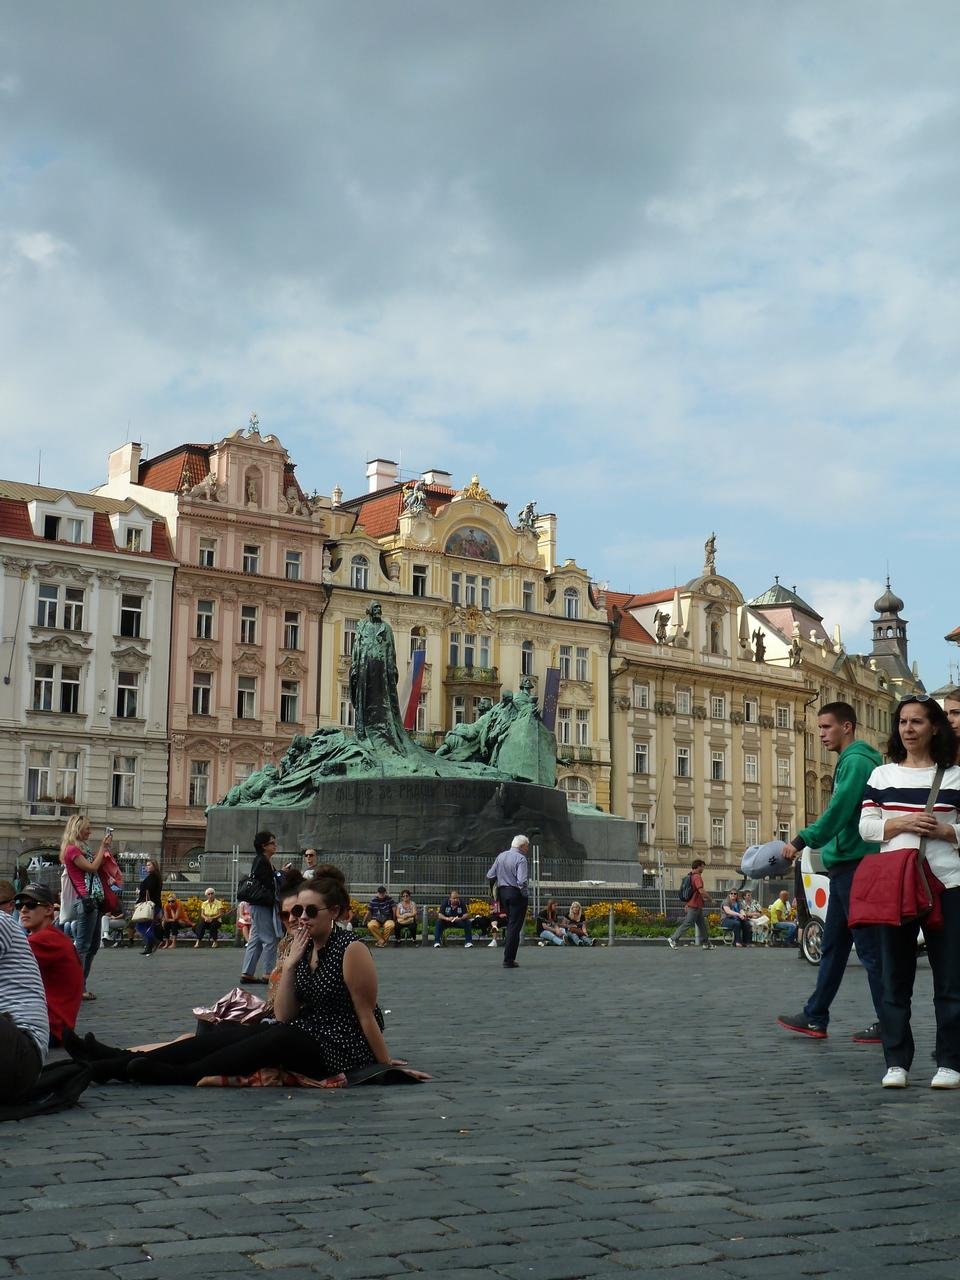 Free View on Old Town Square in Prague, Czech Republic